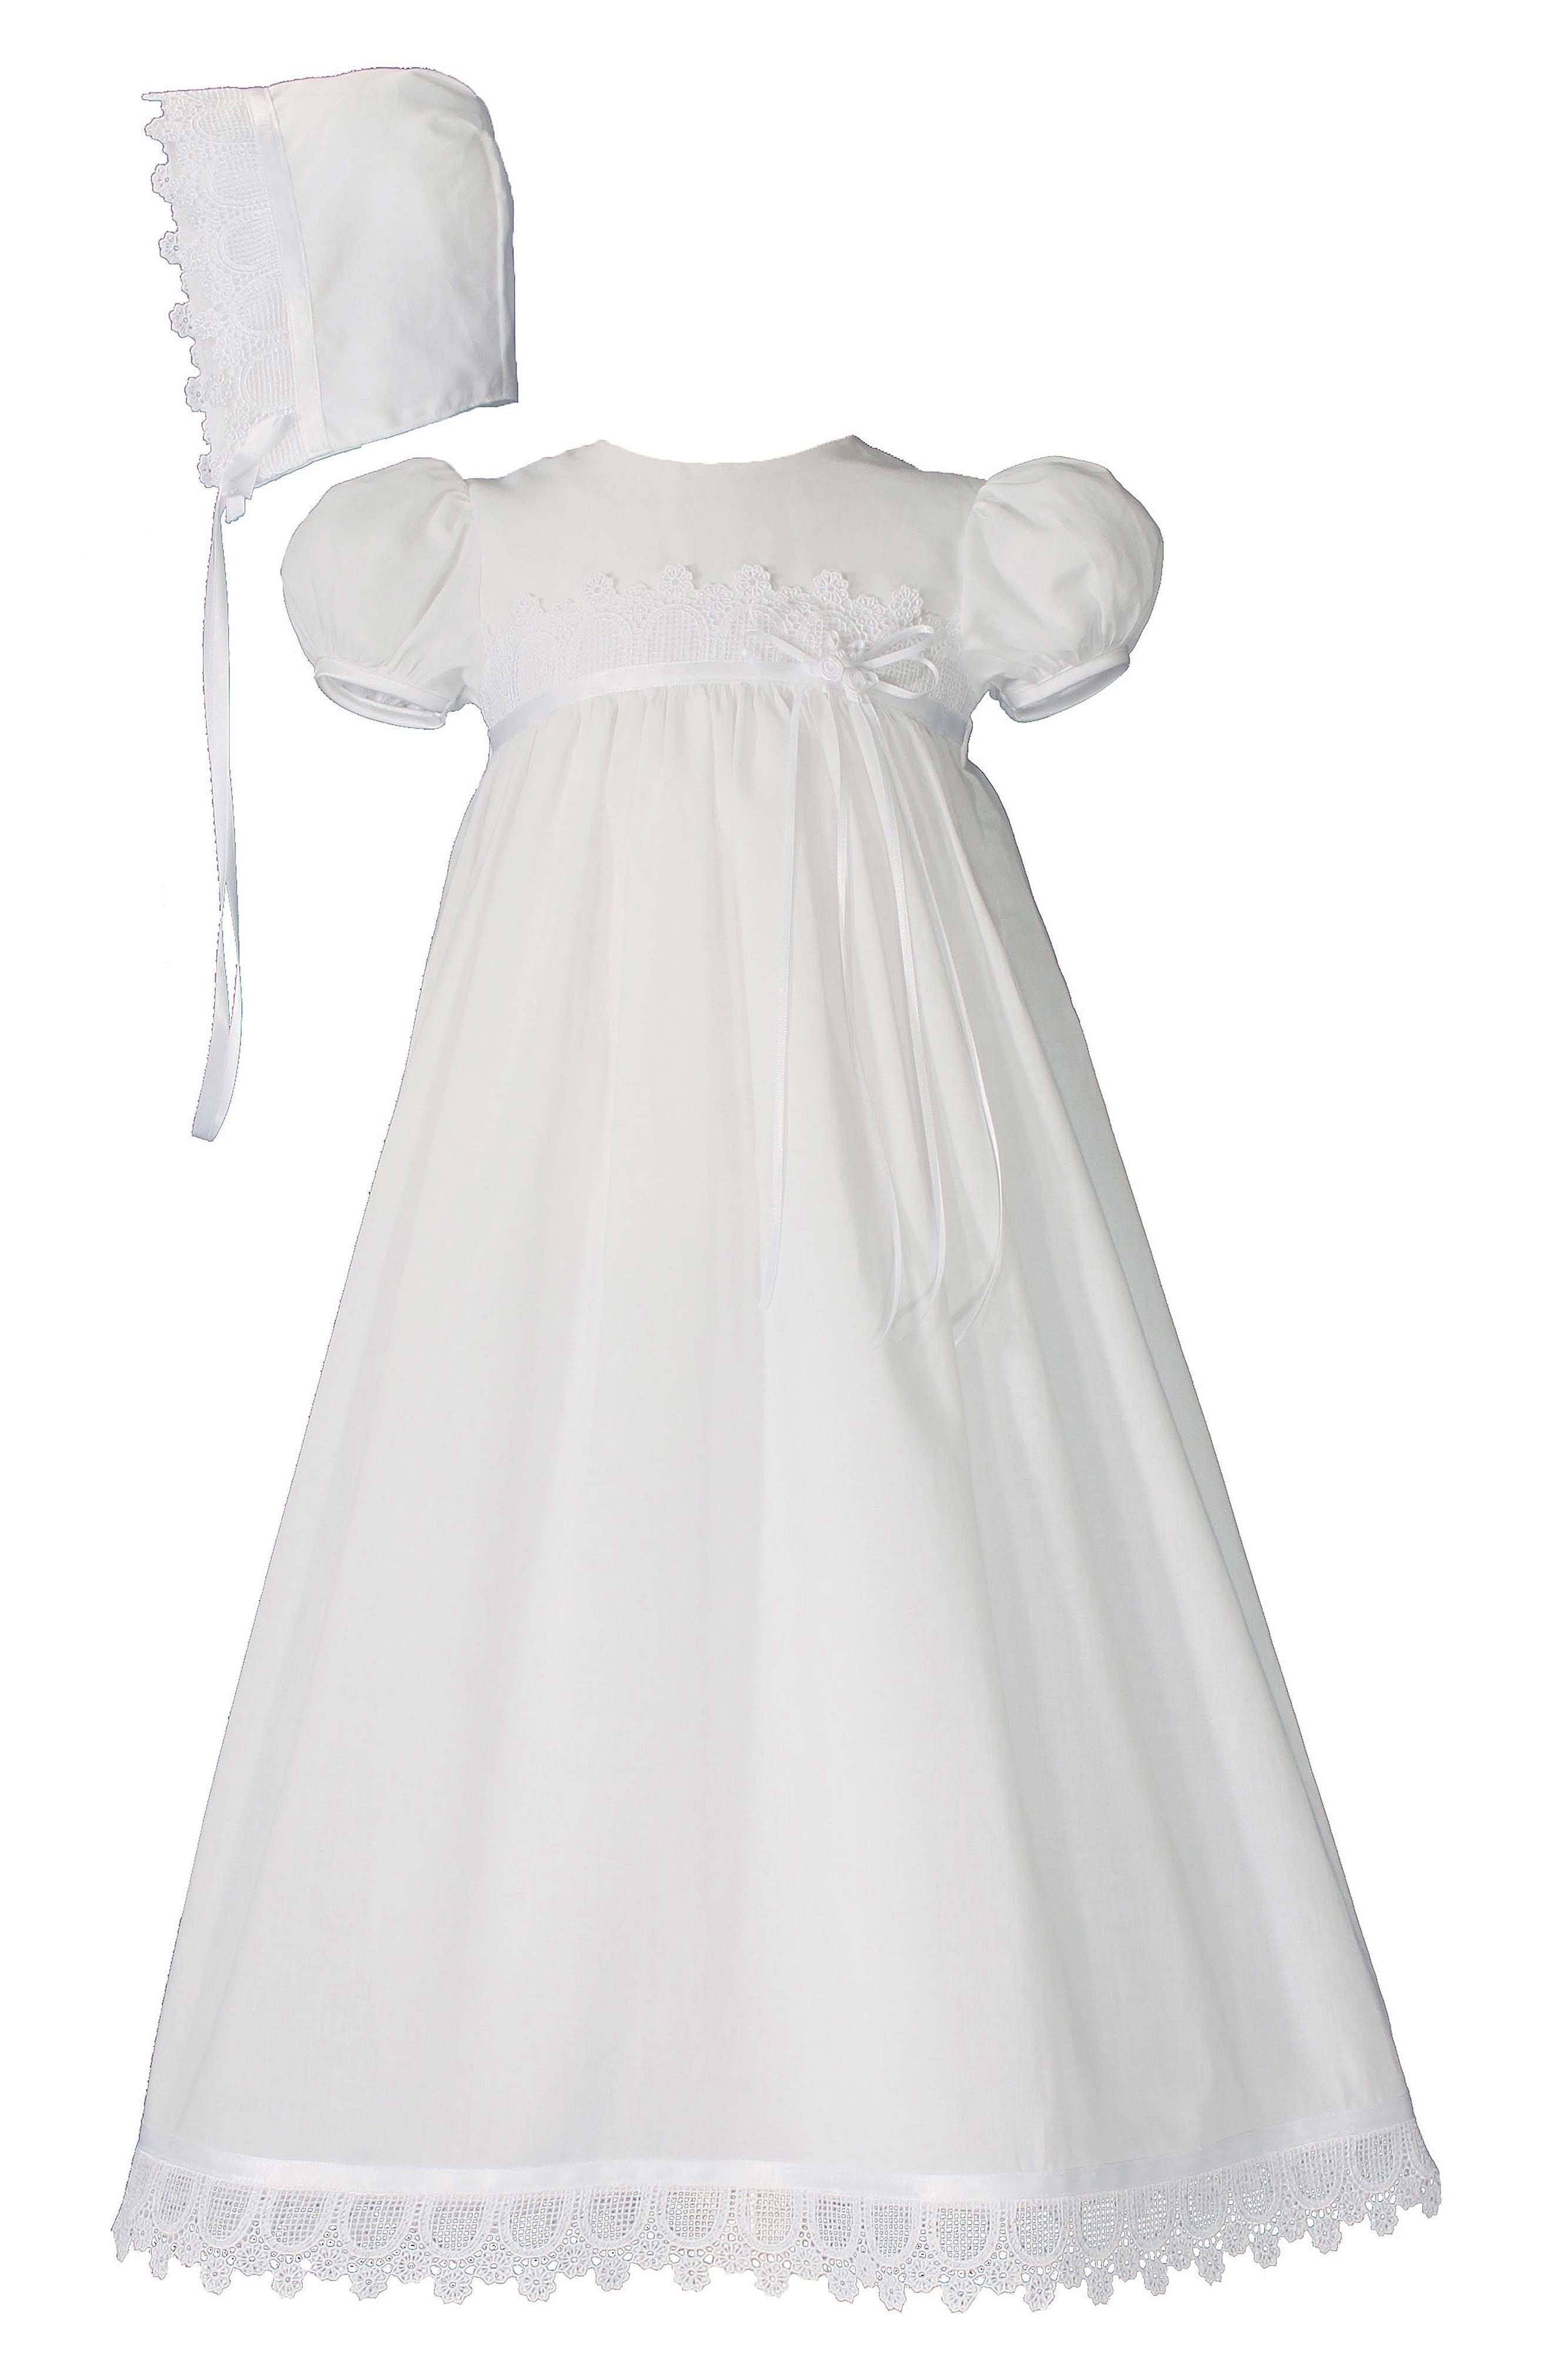 Main Image - Little Things Mean A Lot Christening Gown & Hat Set (Baby Girls)